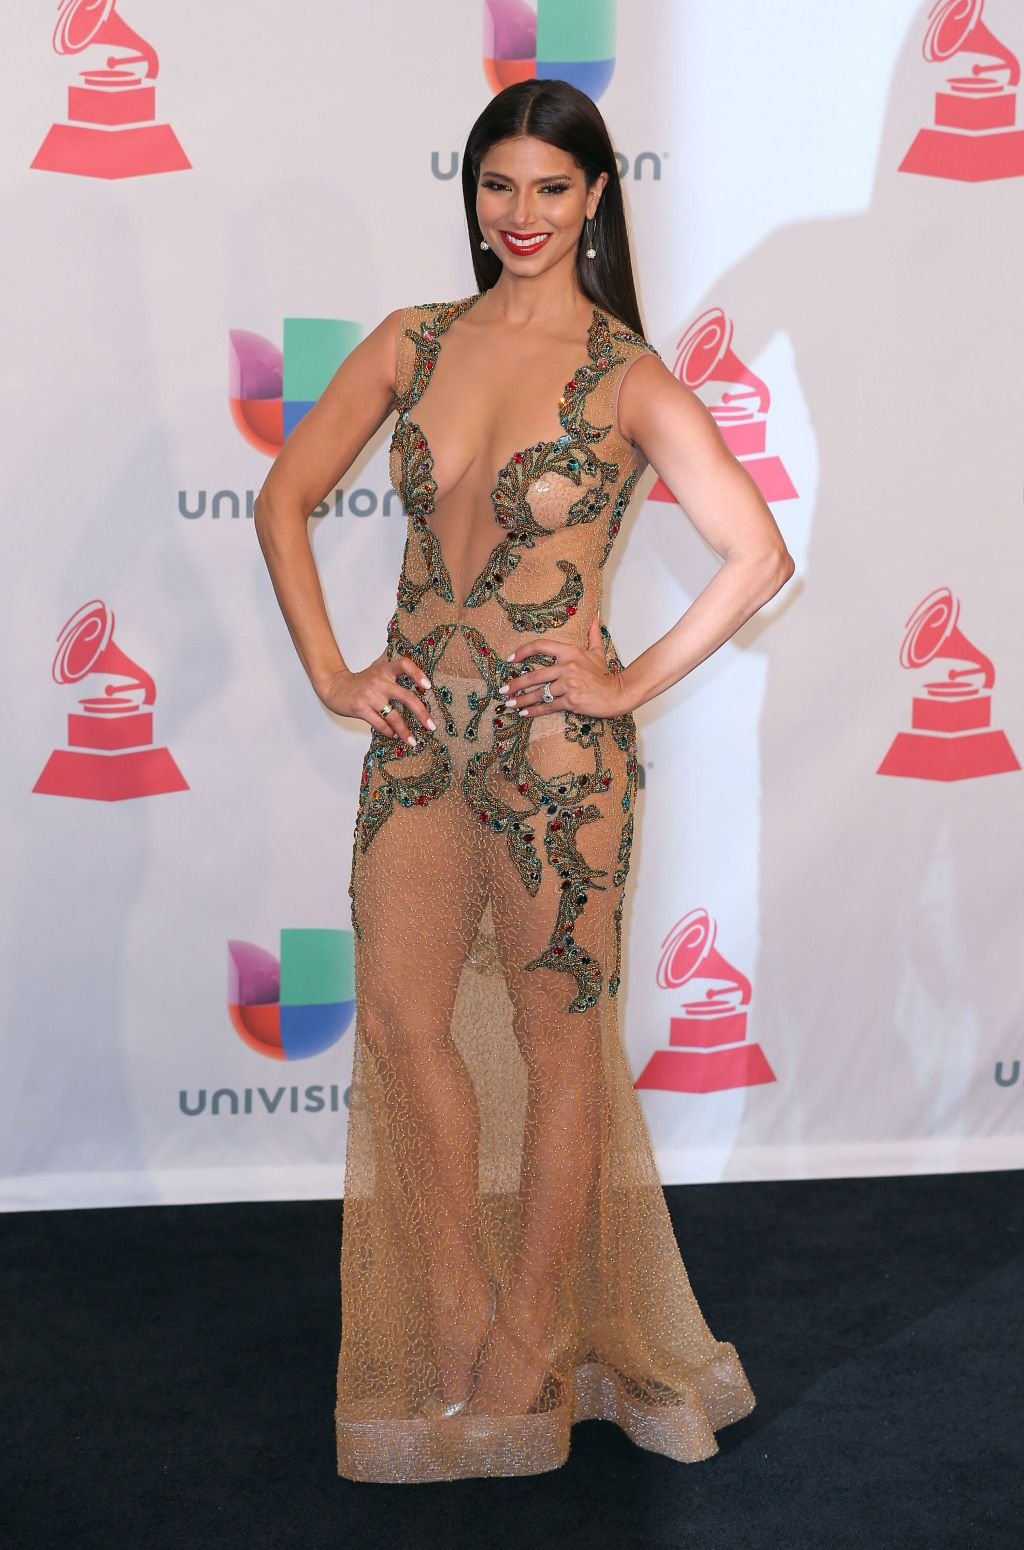 the 18 most naked red carpet looks of 2014 | naked, red carpet and